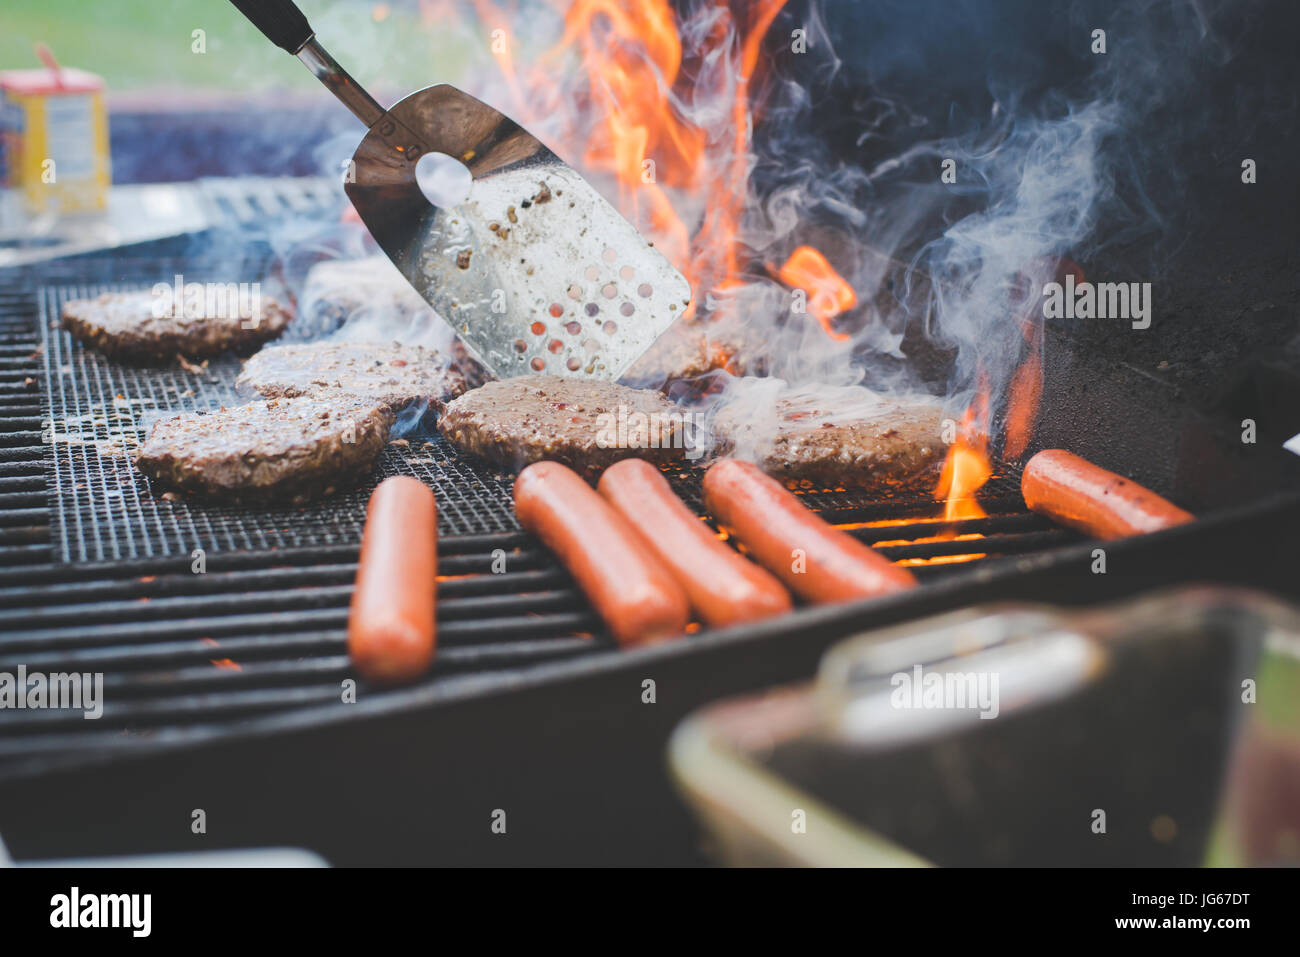 Food cooks on a grill in summer - Stock Image